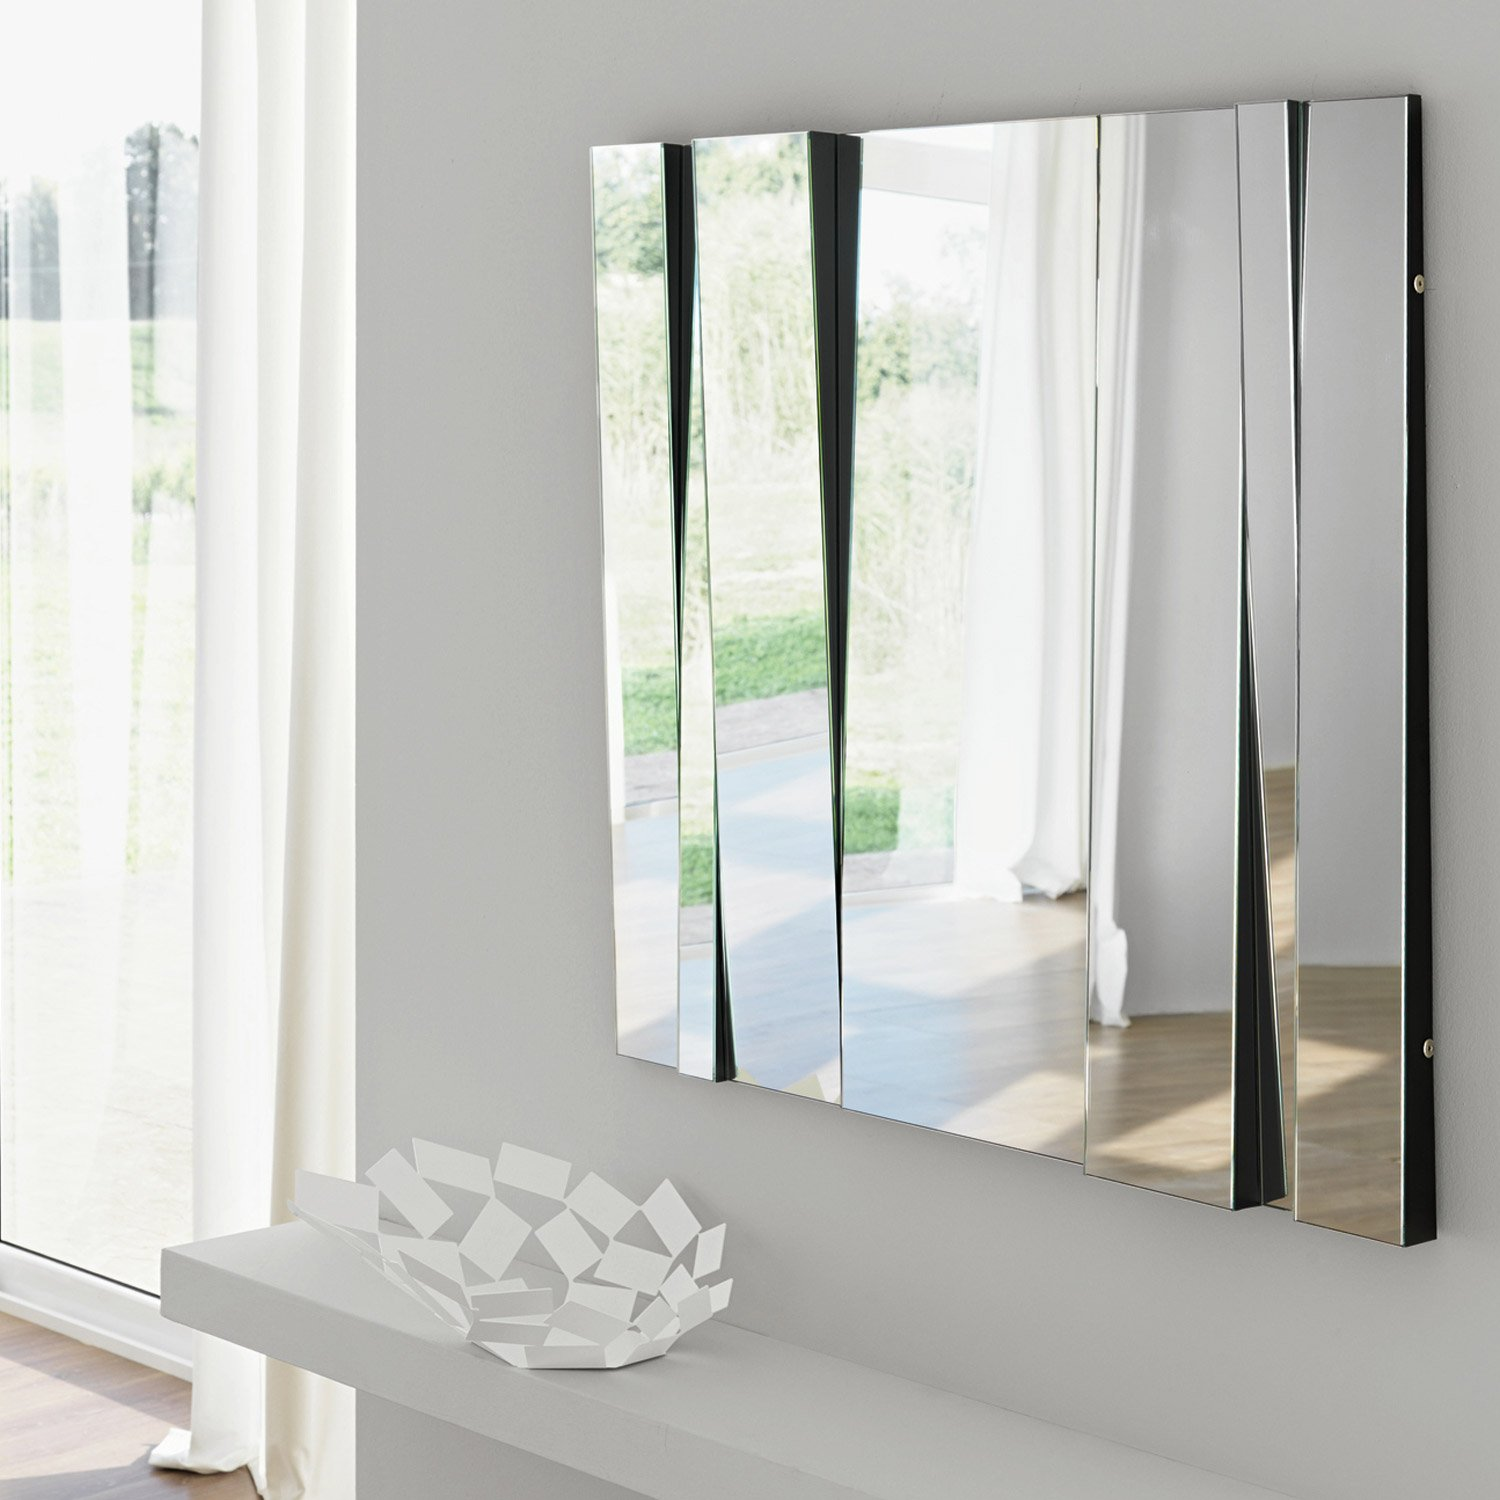 Fittipaldi 90 glass mirror by tonelli klarity glass furniture Mirror glass furniture